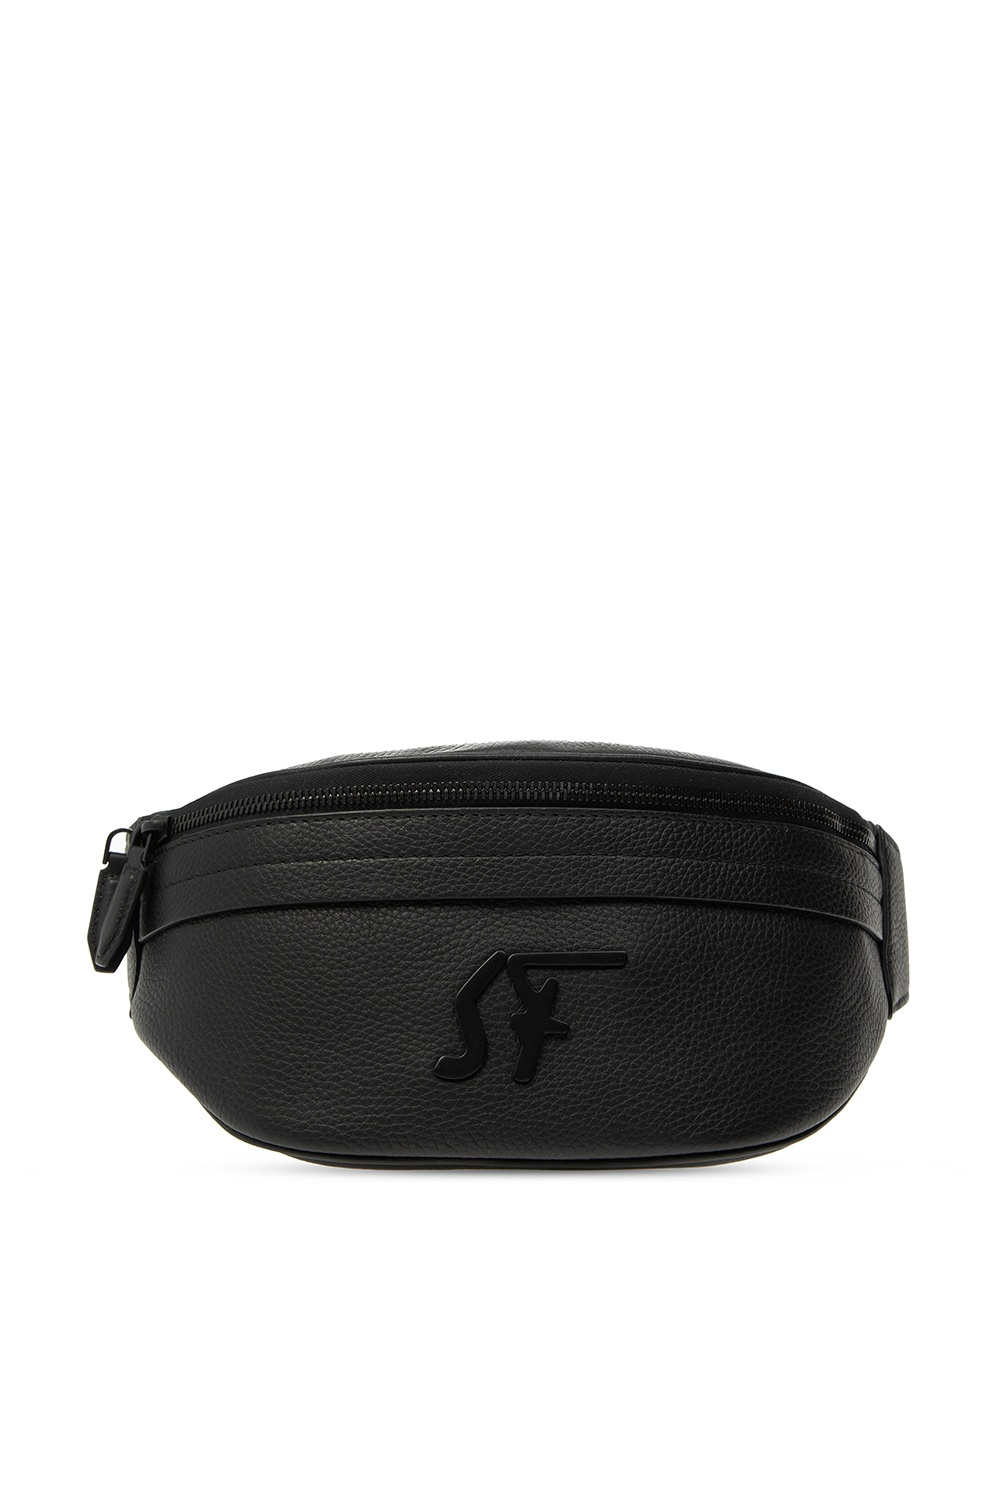 Salvatore Ferragamo 'Firenze' belt bag